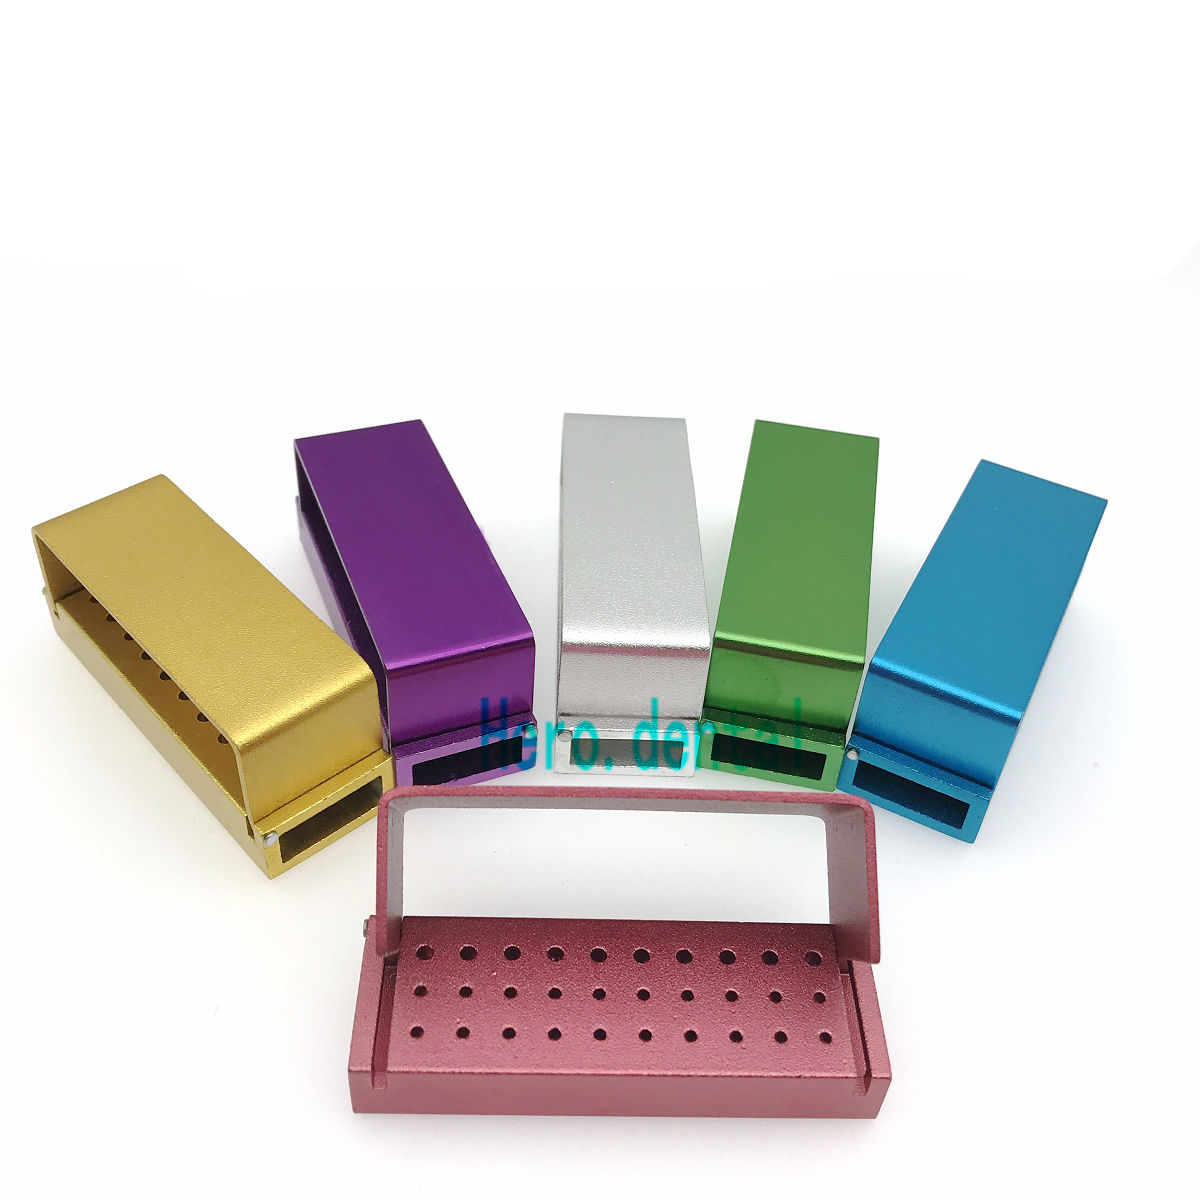 30Holes ALUMINIUM Dental Bur Burs Holder Block dental Disinfection Box Autoclave sale dental lab bur h k file holder block sterilizer case disinfection endo box set